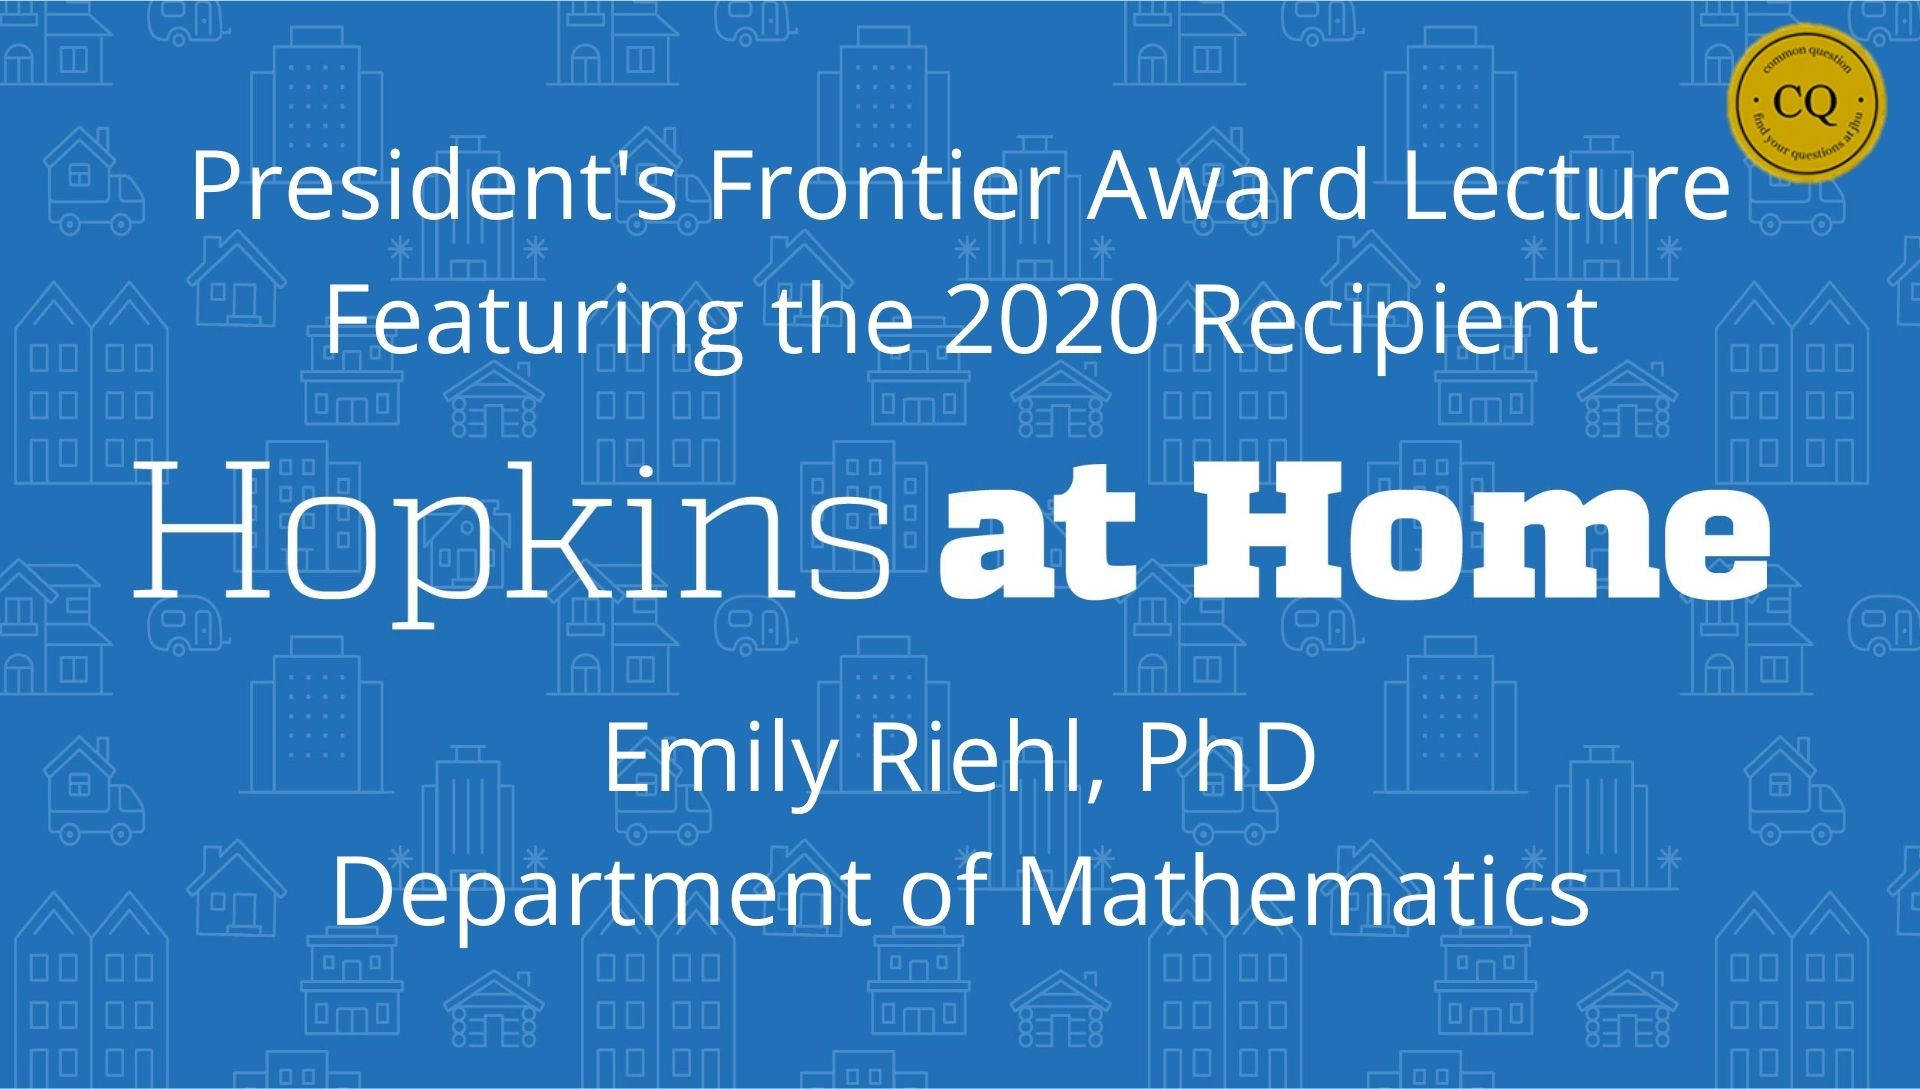 President's Frontier Award Lecture Header Image